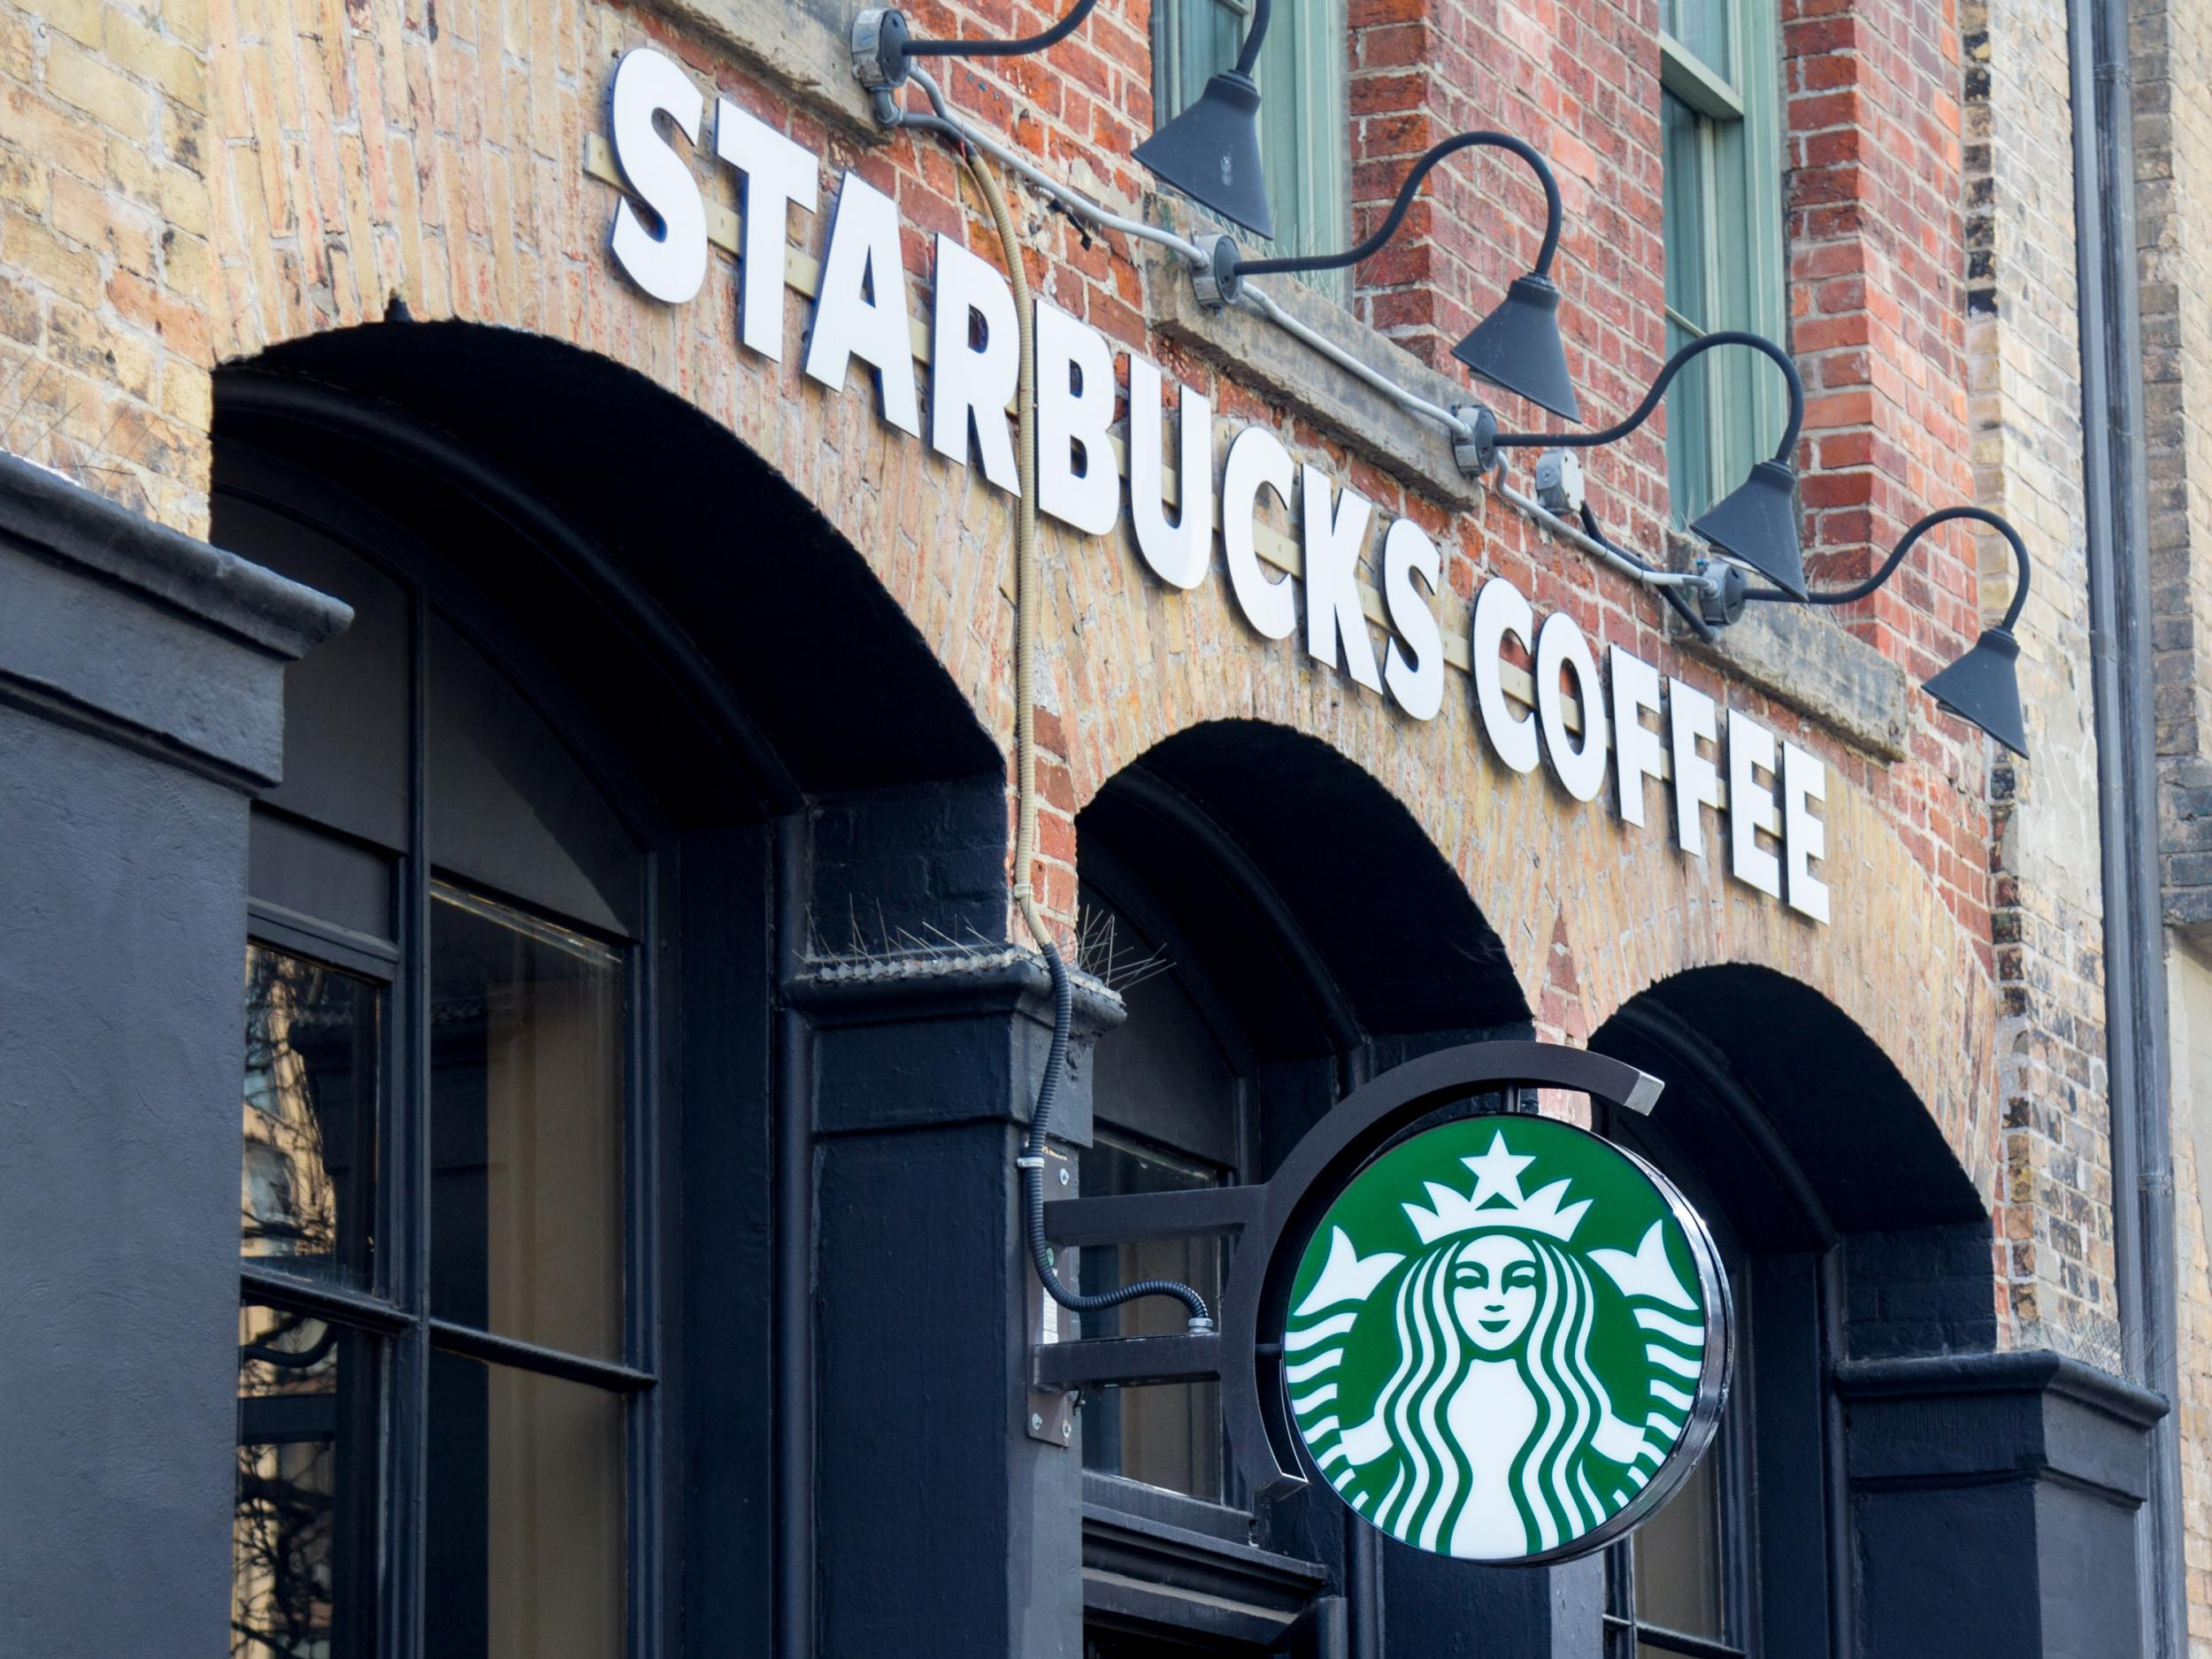 Starbucks to reopen 150 UK shops this week including drive-thru service